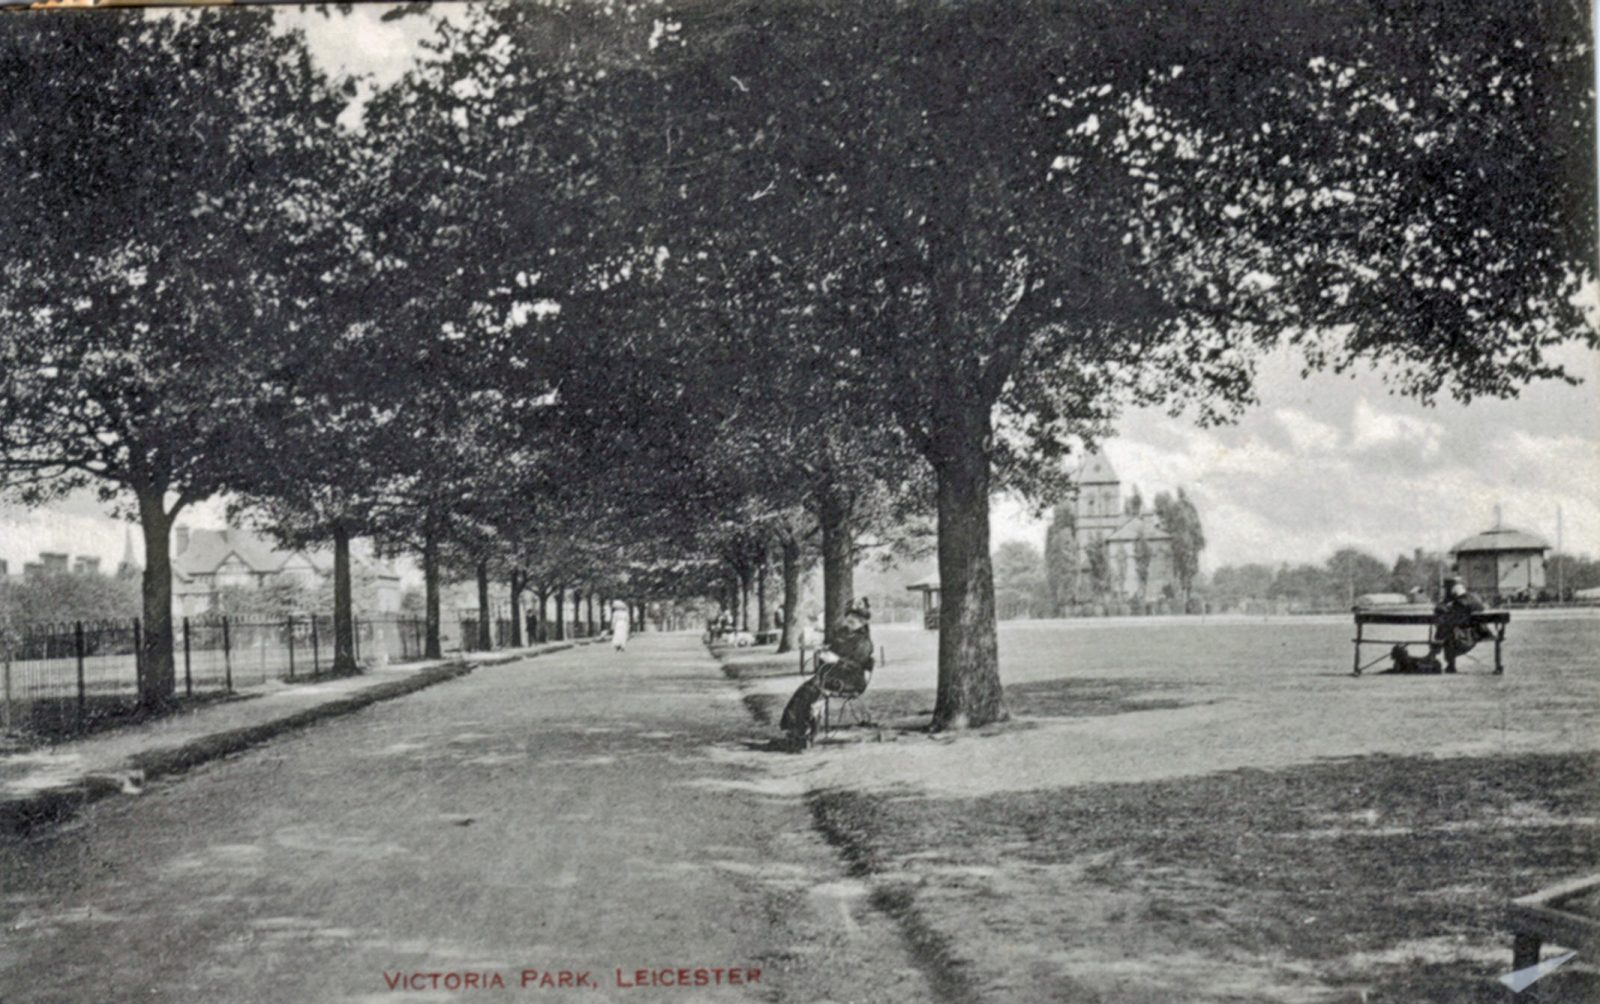 Victoria Park, Leicester. 1901-1920: Broad walk with pavilion in distance. Man on seat. Franked 1915 (File:1076)